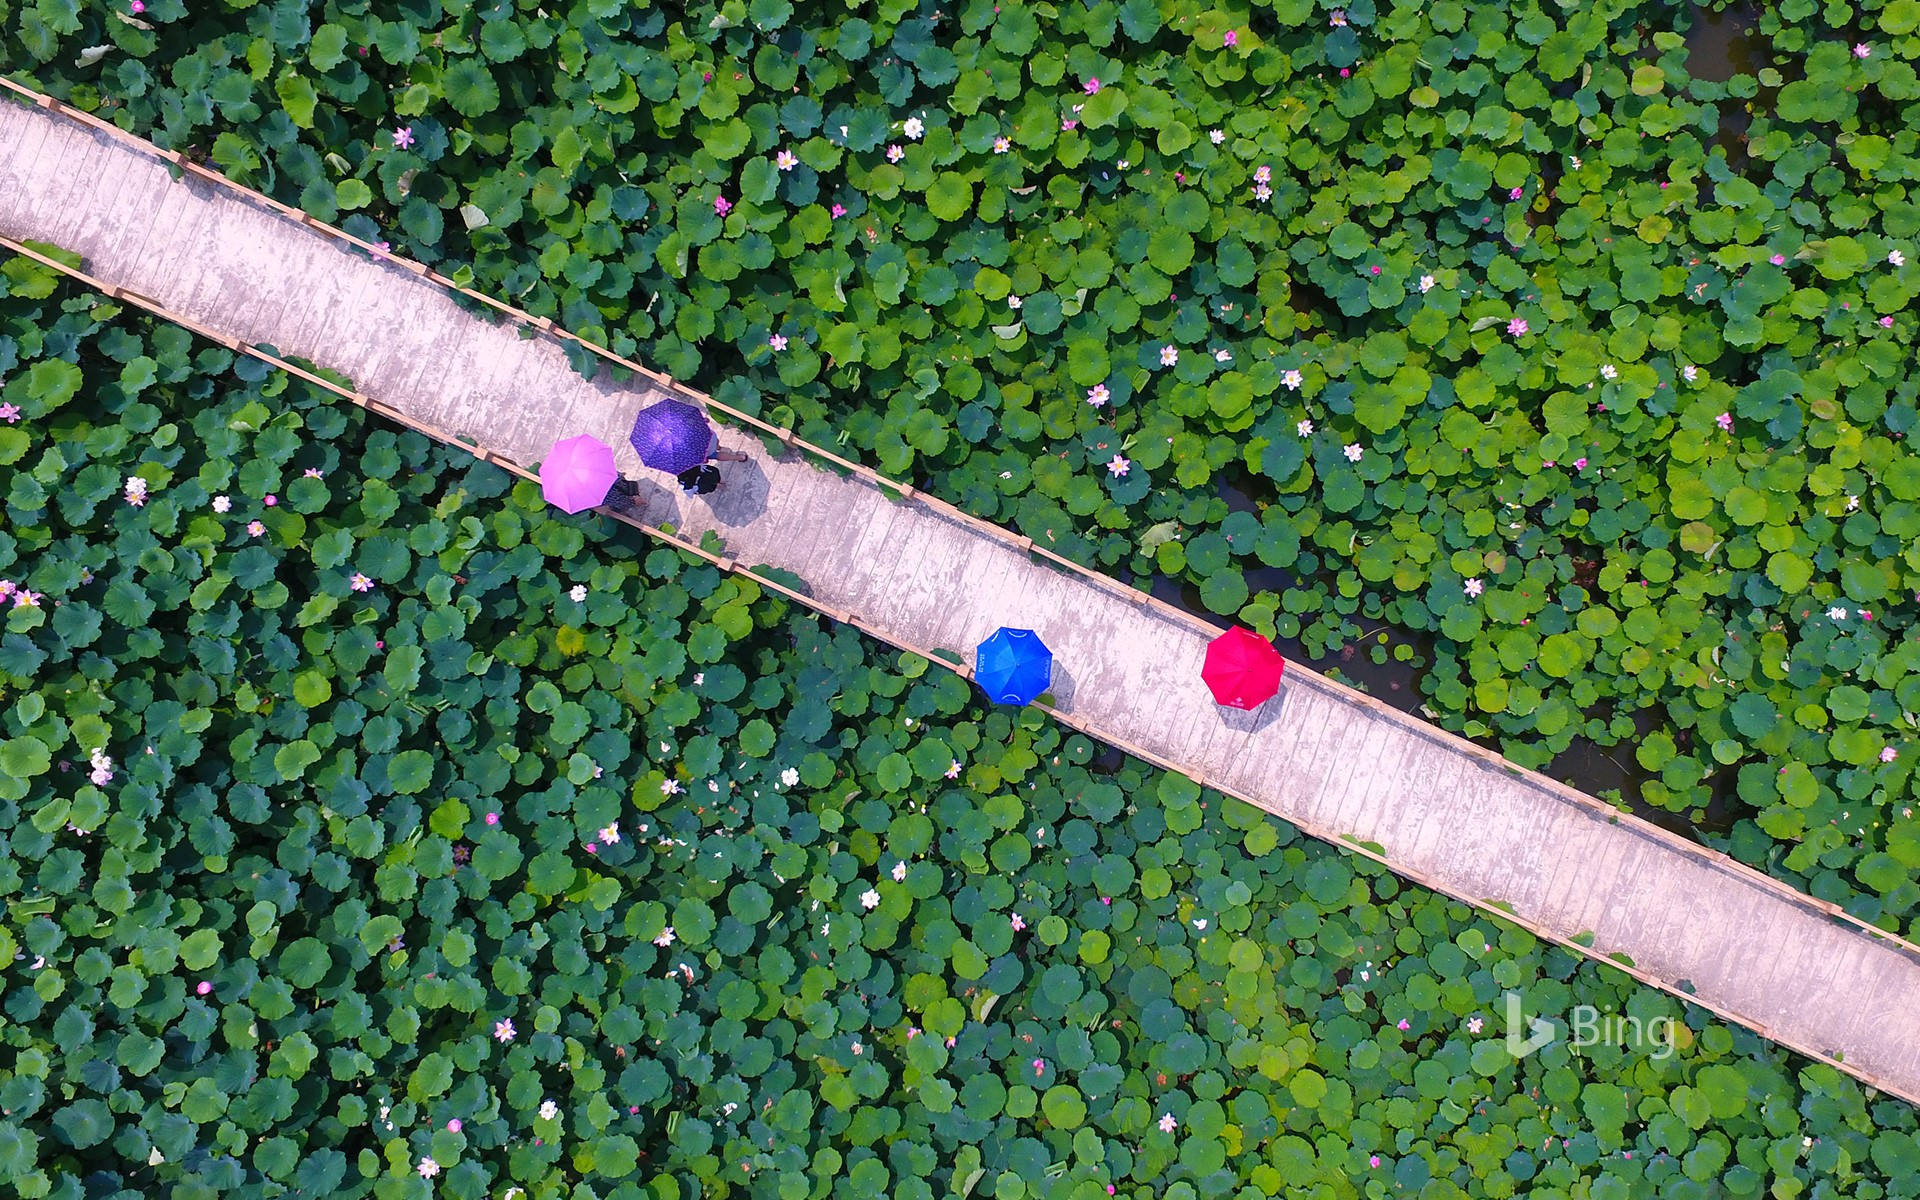 [Small Summer Today] Tourists watch lotus flowers at Yunhe Wetland Park in Taierzhuang District, Zaozhuang, Shandong, China